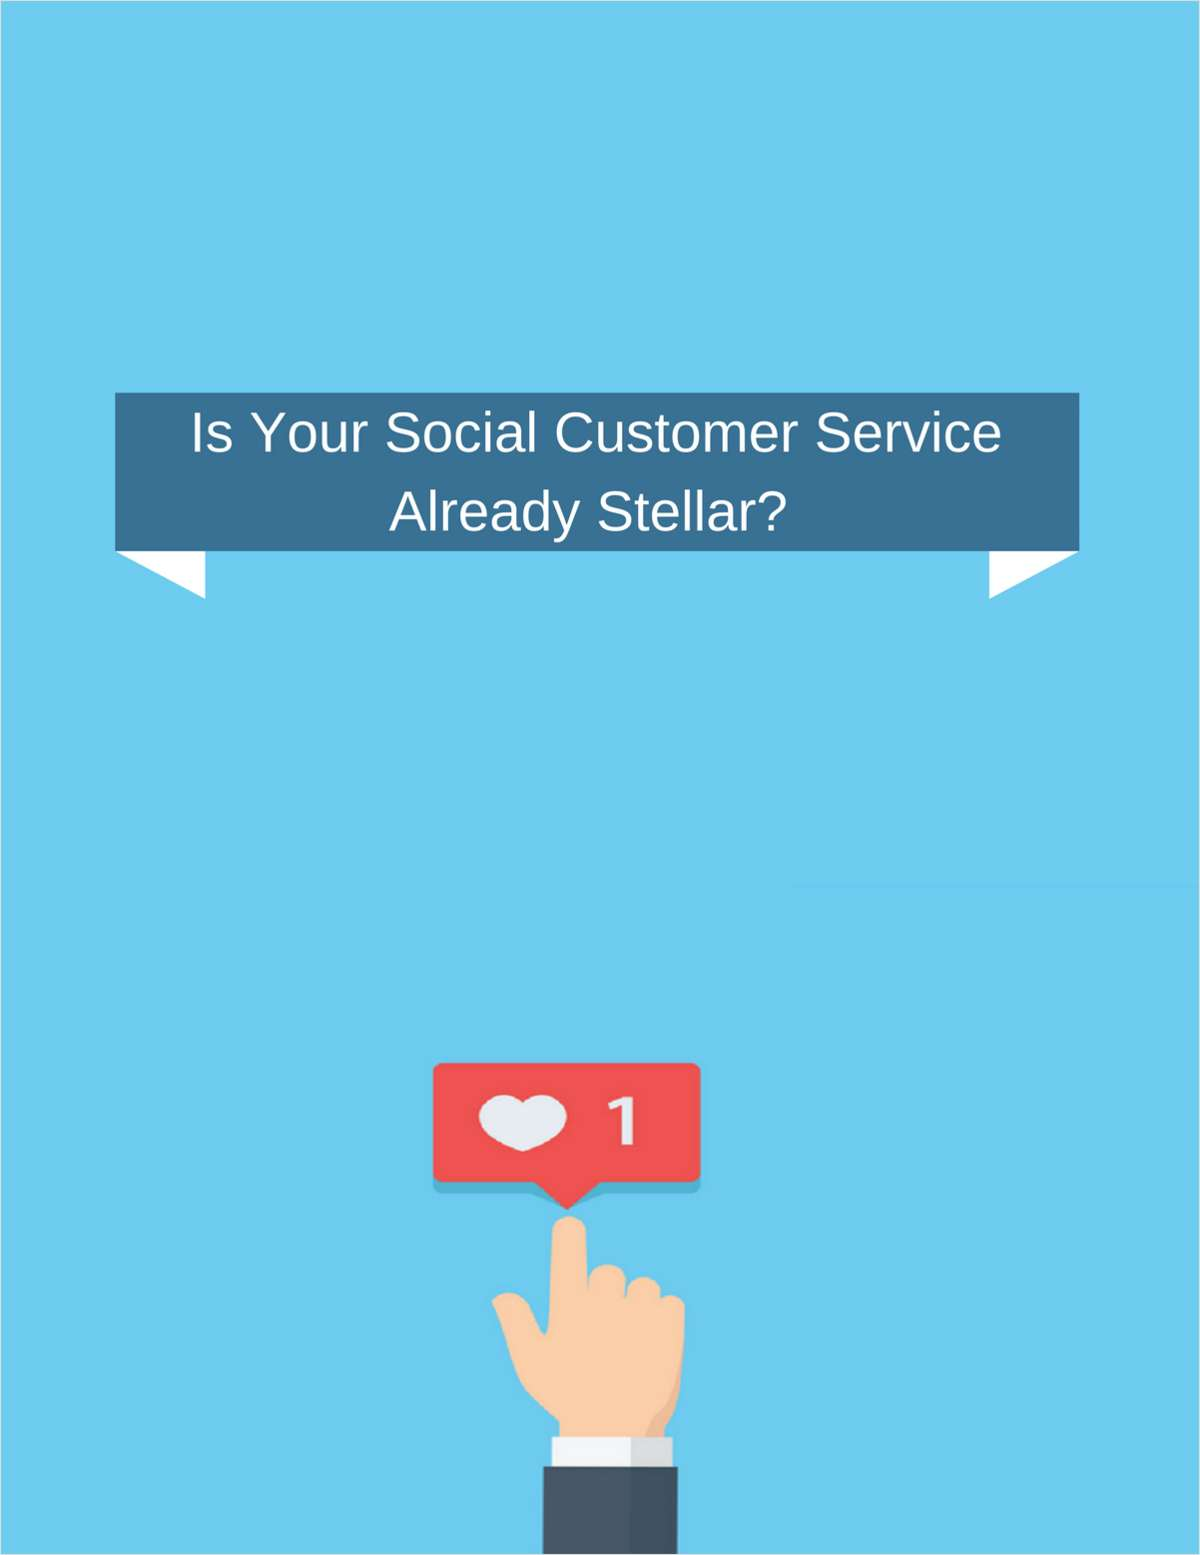 Is Your Social Customer Service Already Stellar?